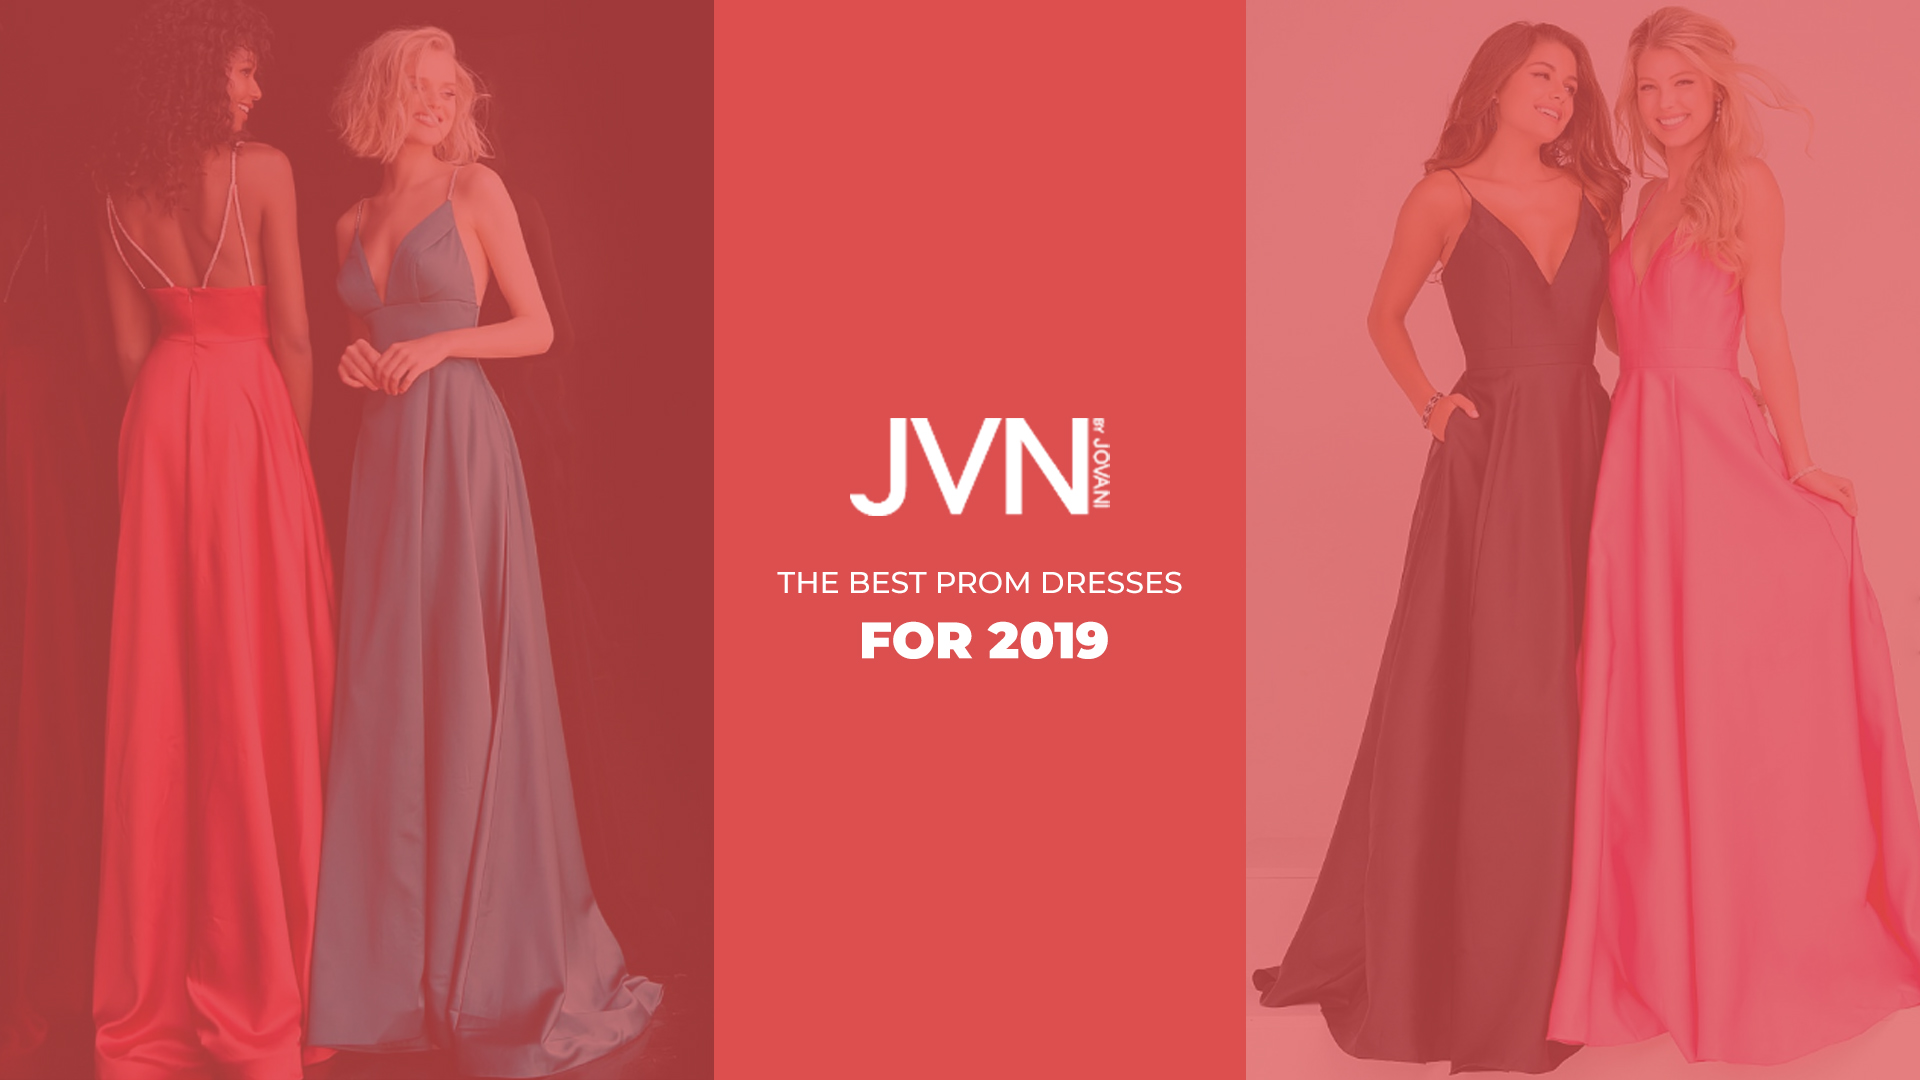 The best prom dresses for 2020